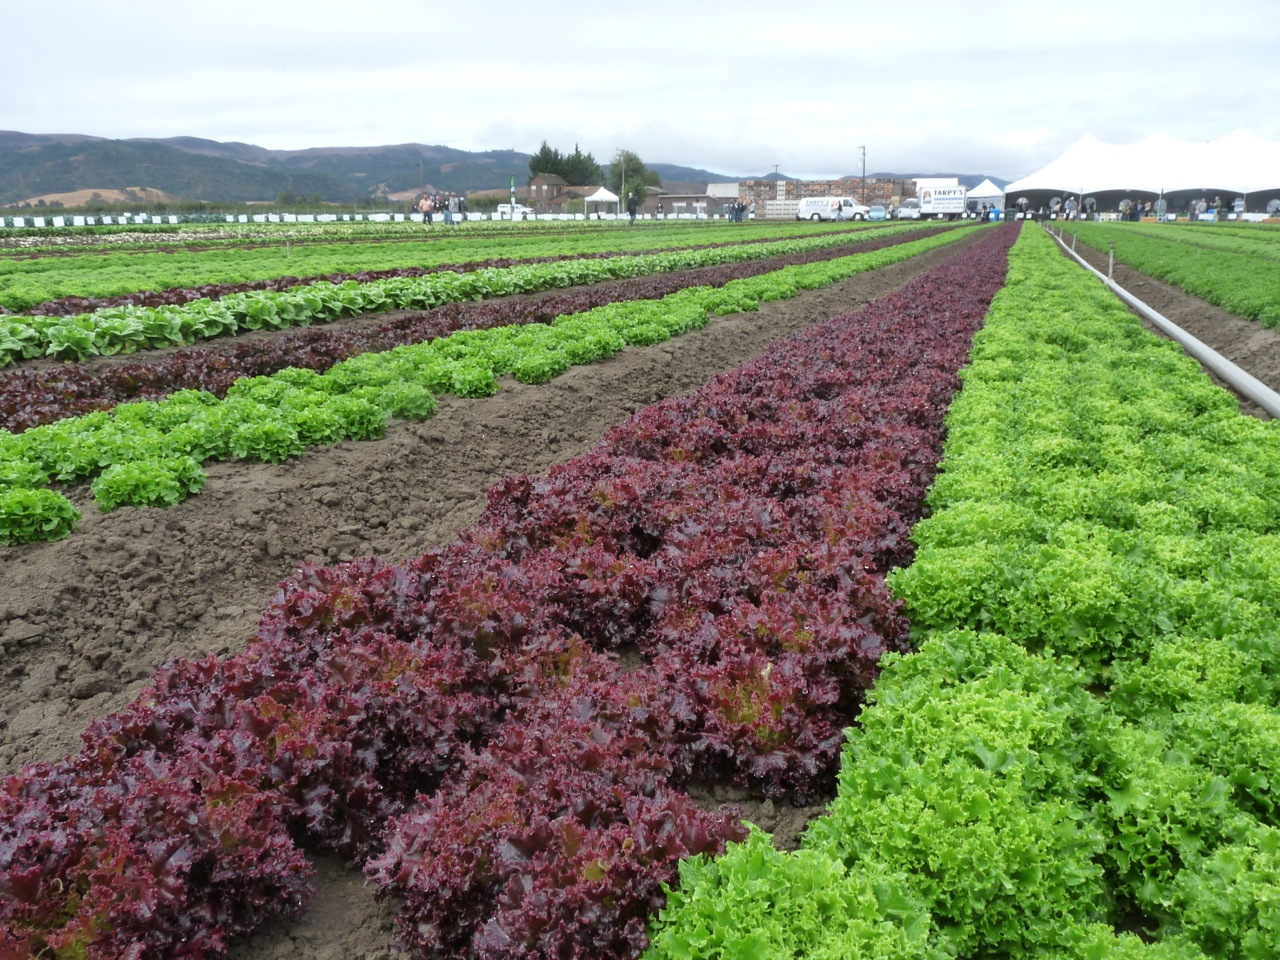 Reducing Food Safety Issues in Leafy Greens